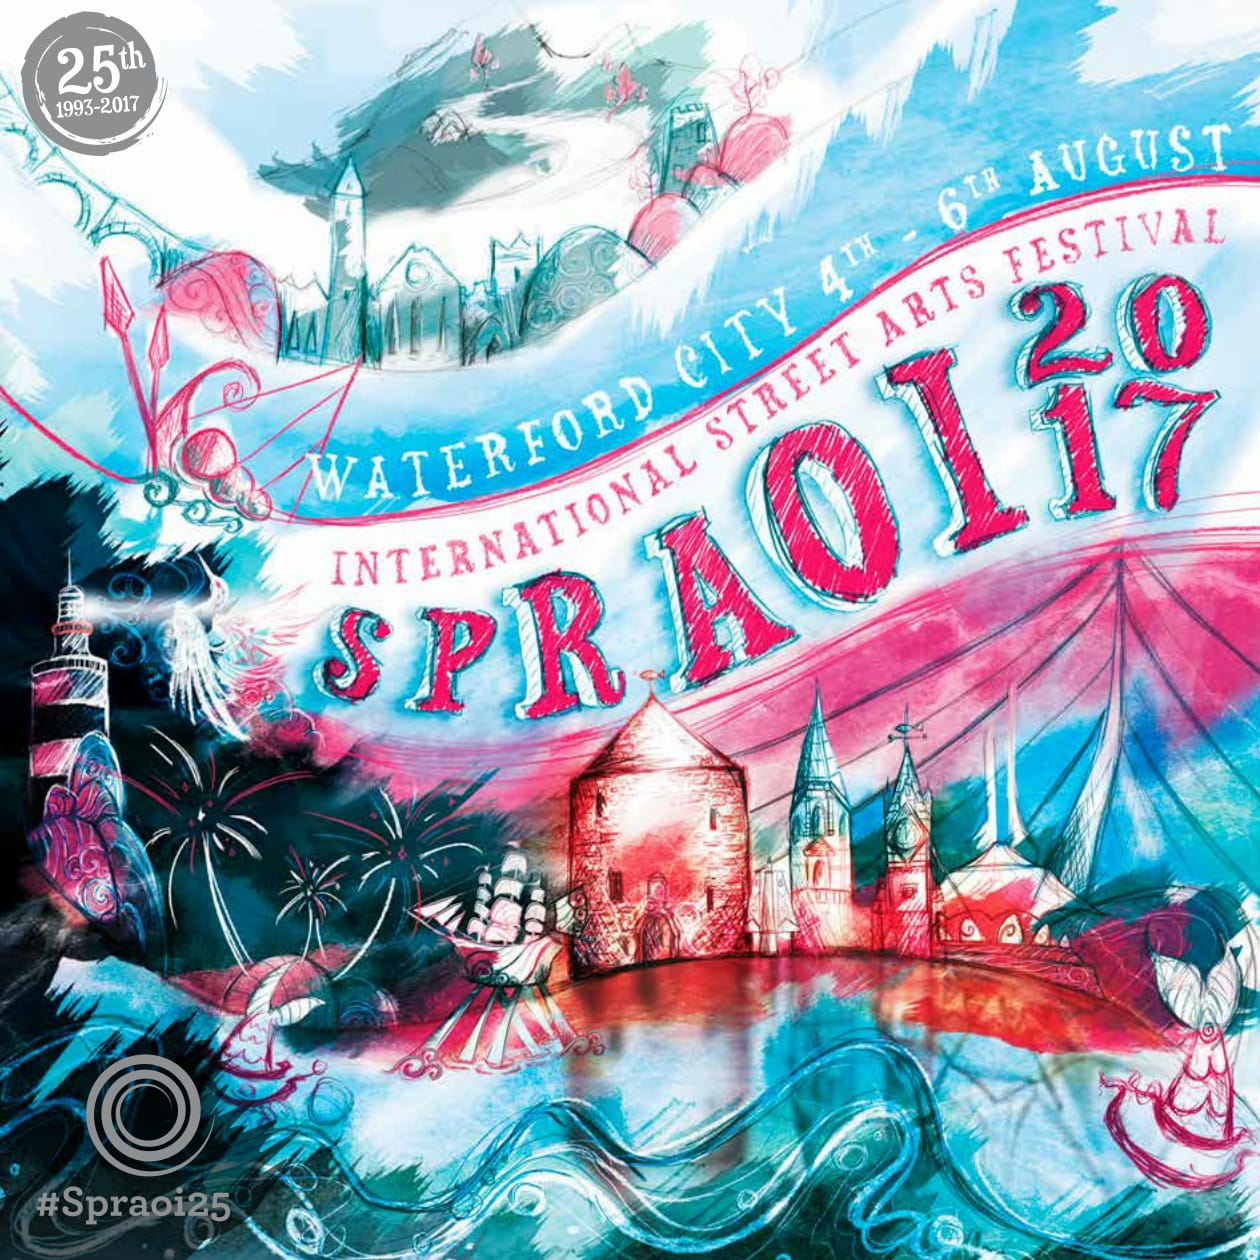 Spraoi 2017 is almost upon us! Hear what's coming up for the 25th anniversary